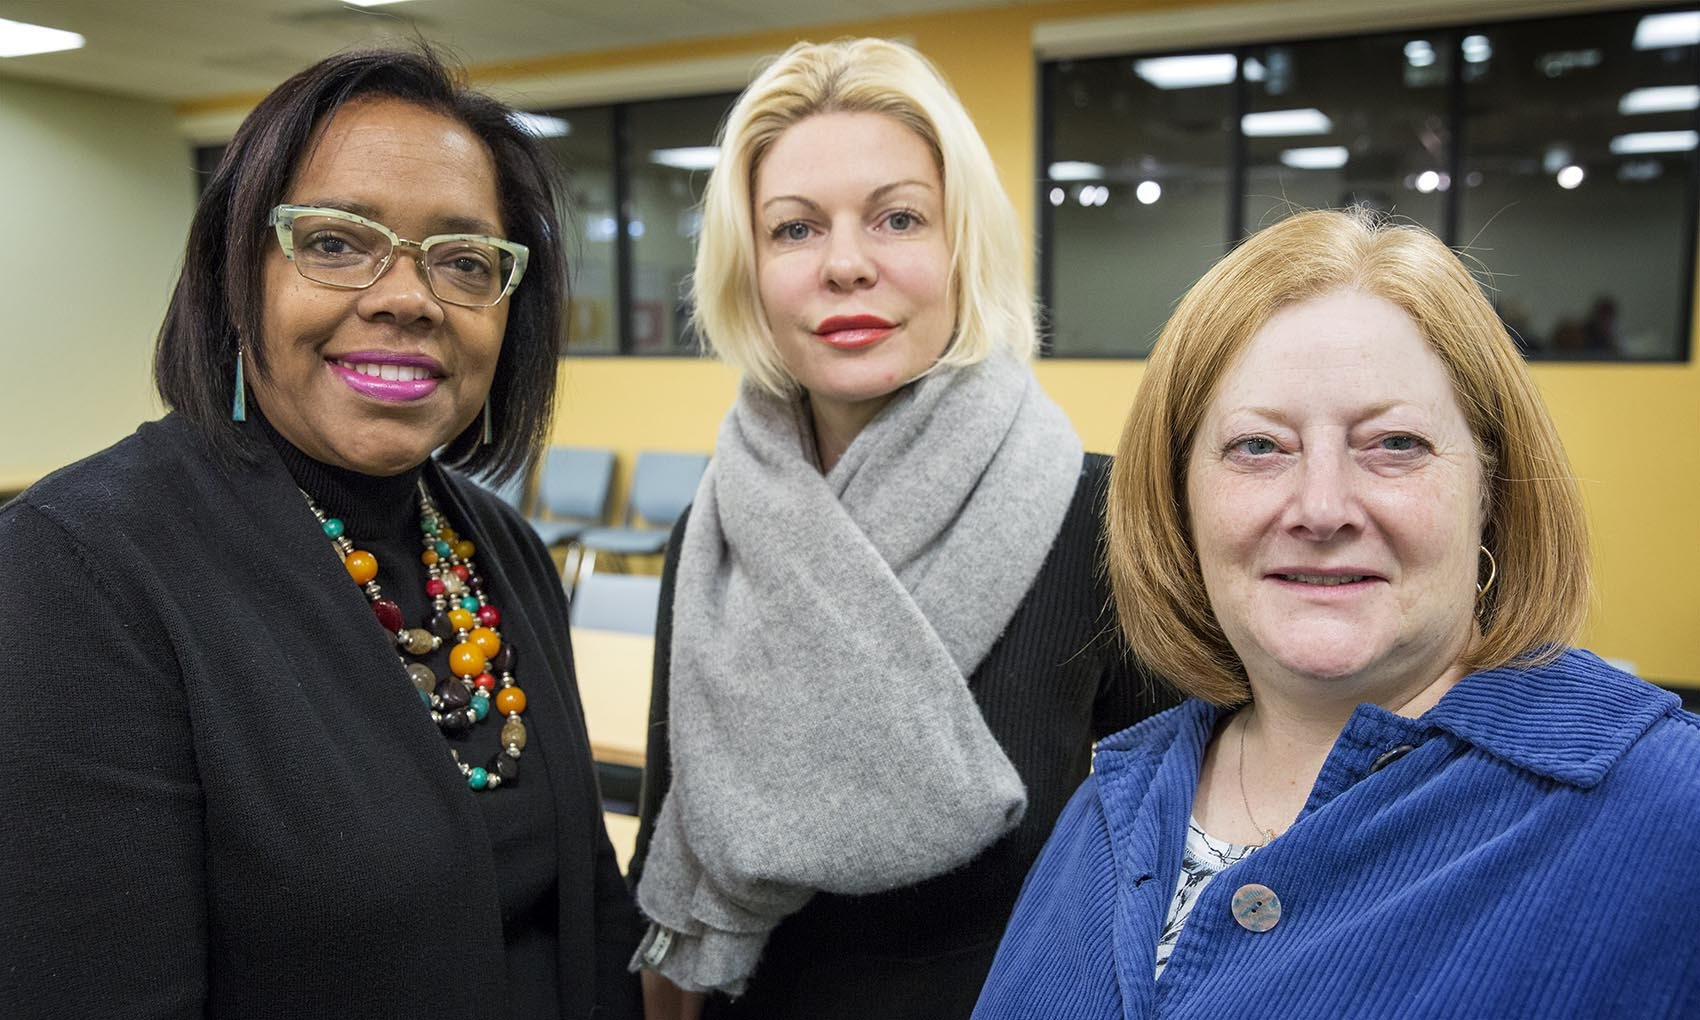 From left: Donna Latson Gittens, CEO of MORE Advertising; Nicole Sahin, CEO of Globalization Partners; and Joanne Kamens, executive director at AddGene, meet for a conversation at WBUR. (Robin Lubbock/WBUR)